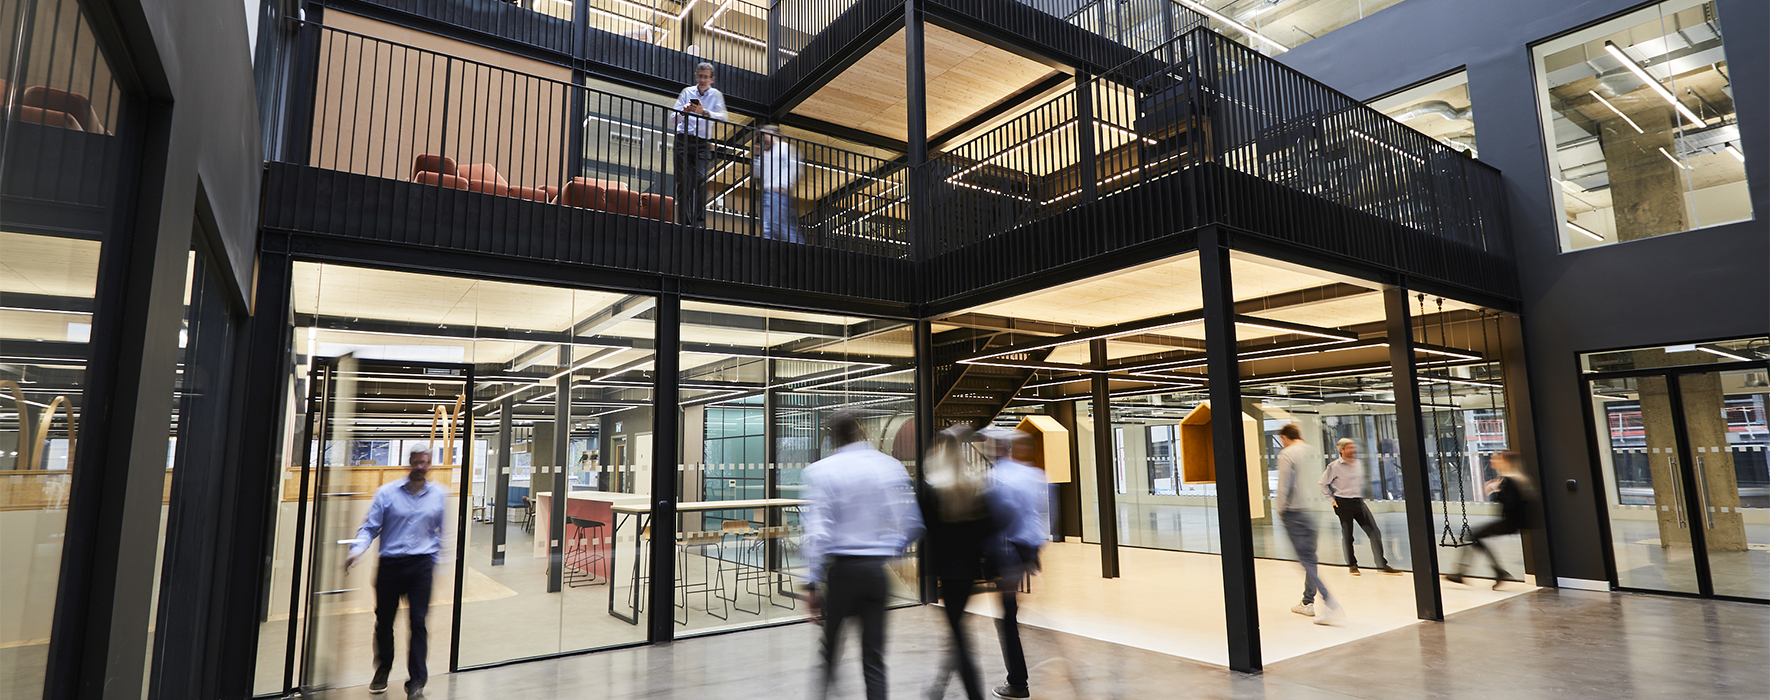 How remote working is changing workplace design